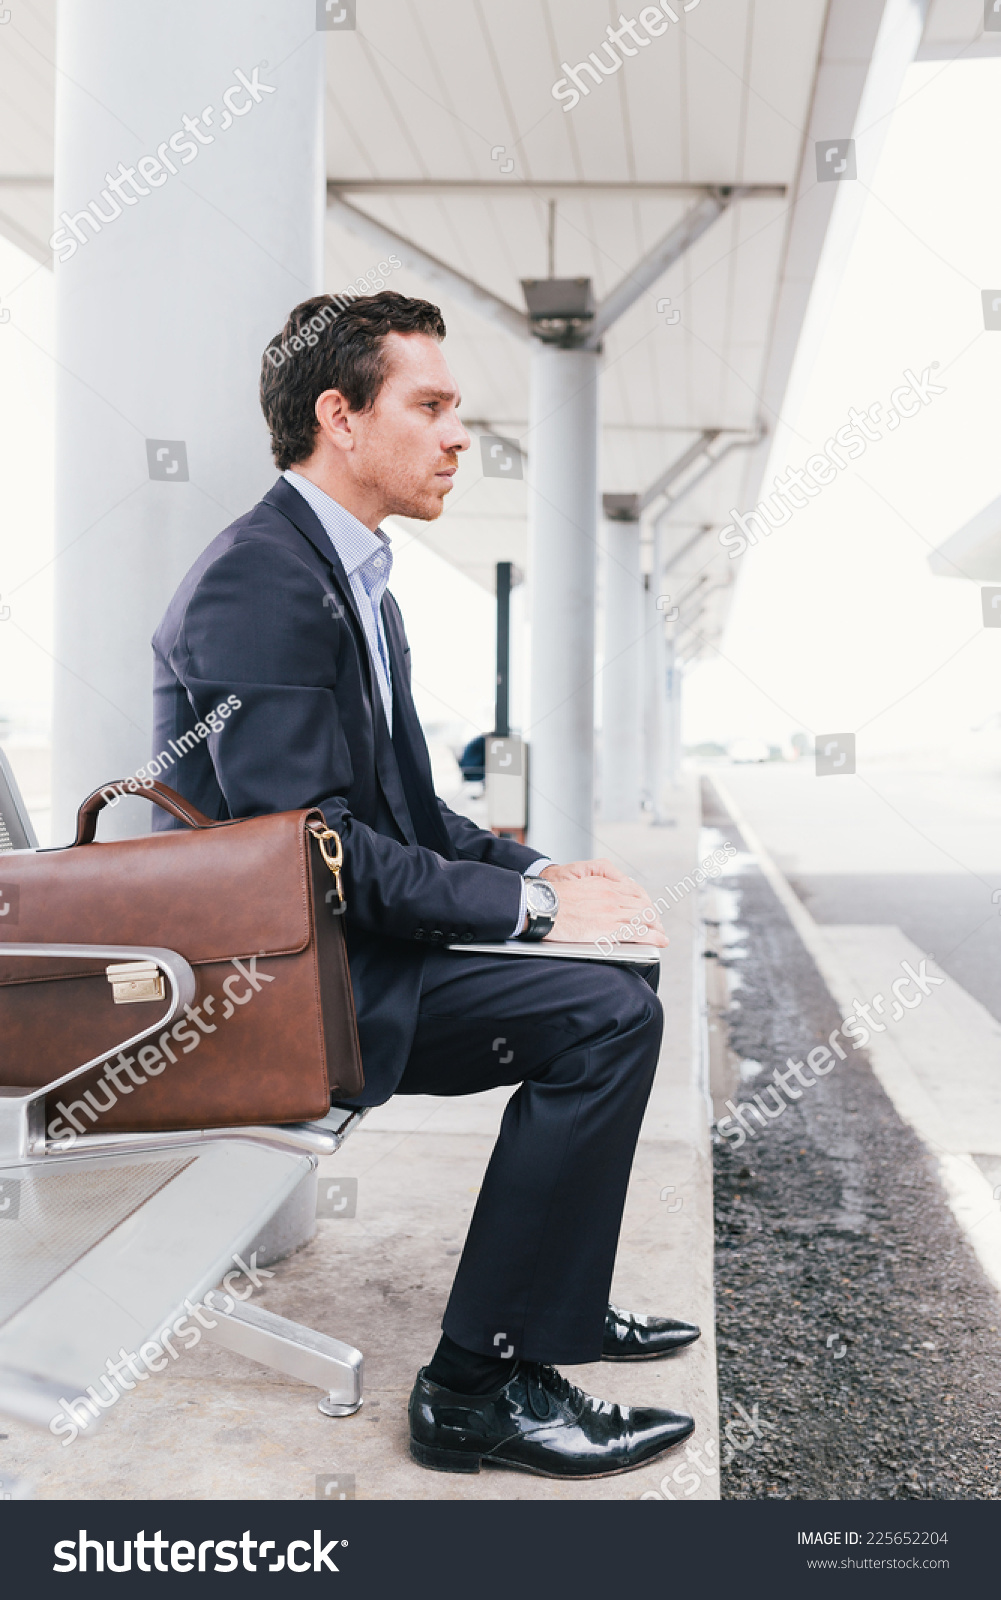 Man sitting in chair side - Businessman Sitting On The Chair At The Bus Station Side View